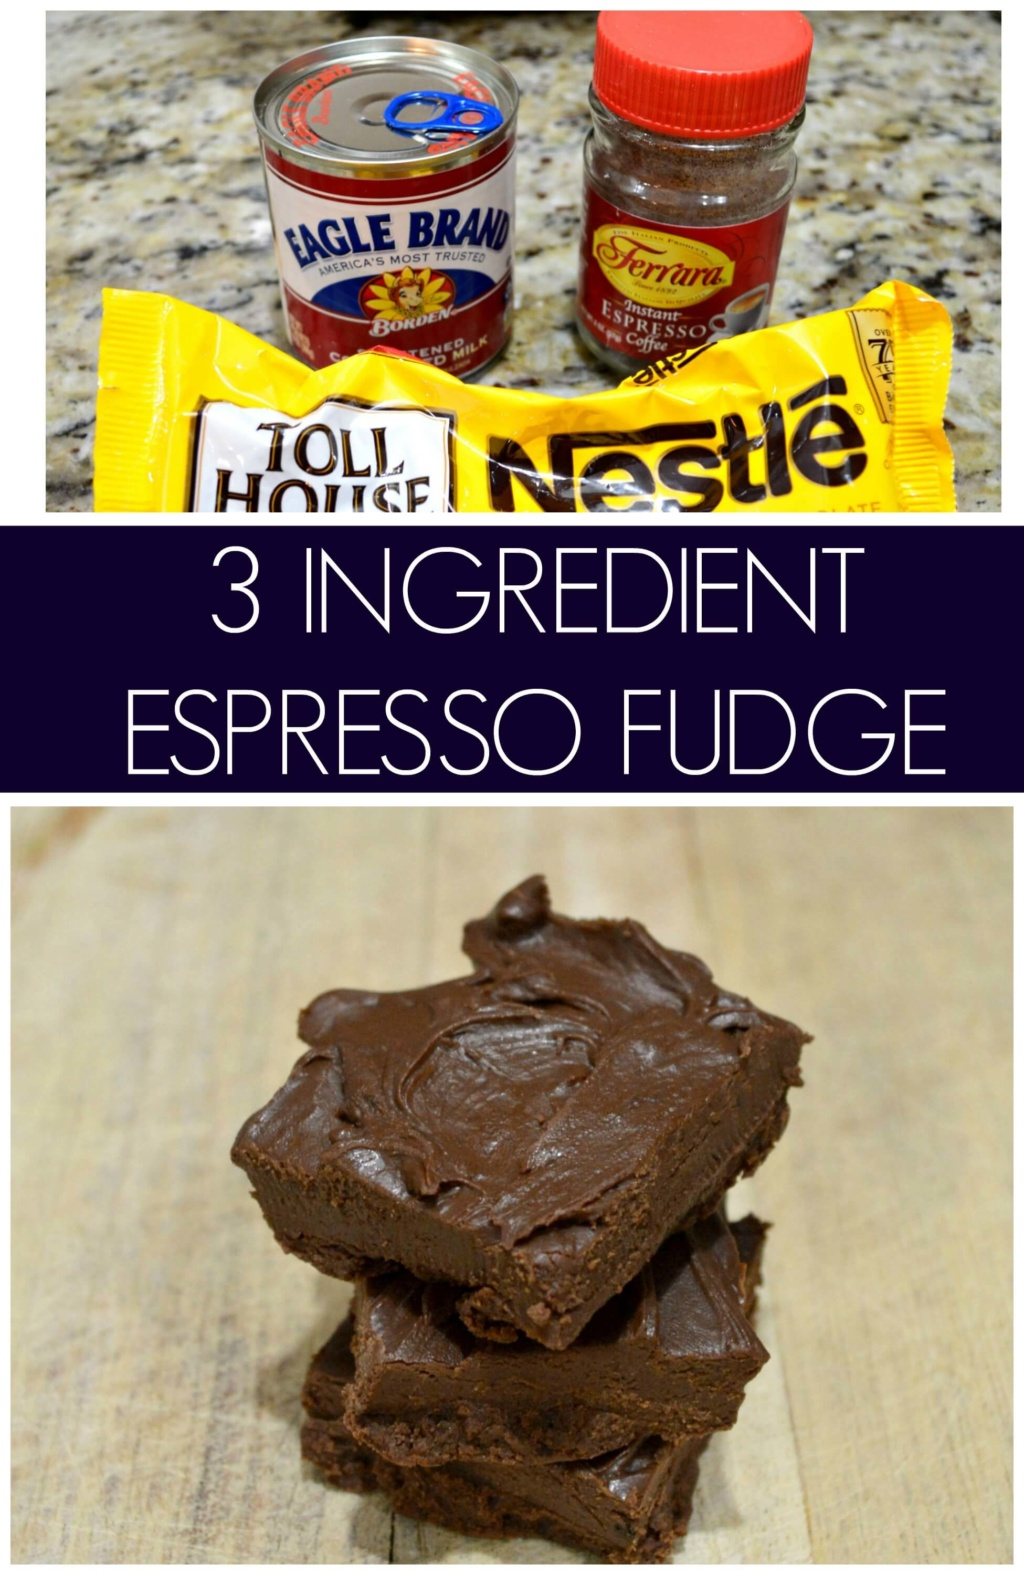 3 Ingredient Espresso Fudge